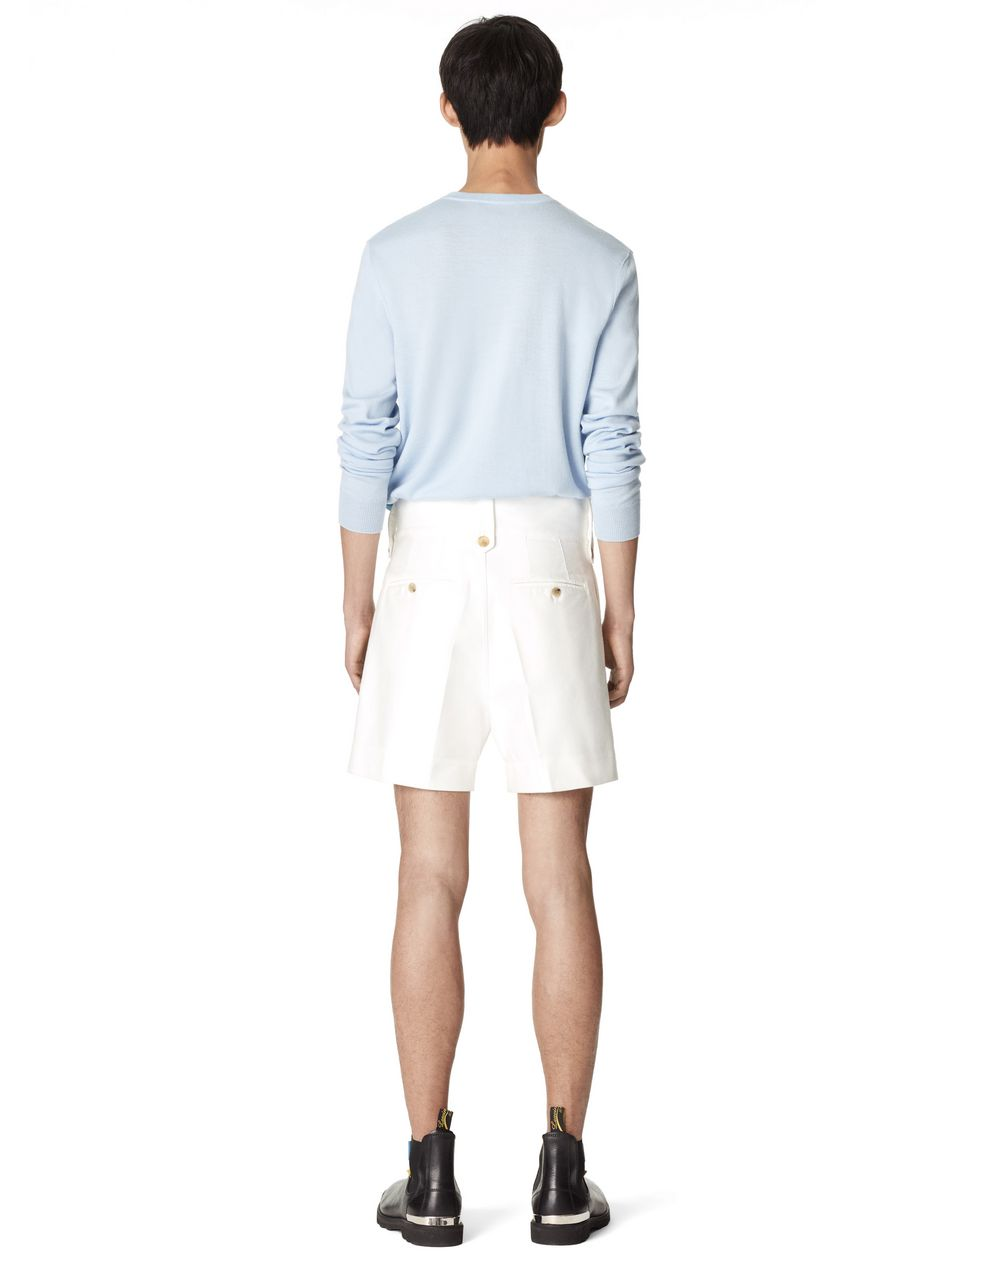 SAFARI SHORTS - Lanvin